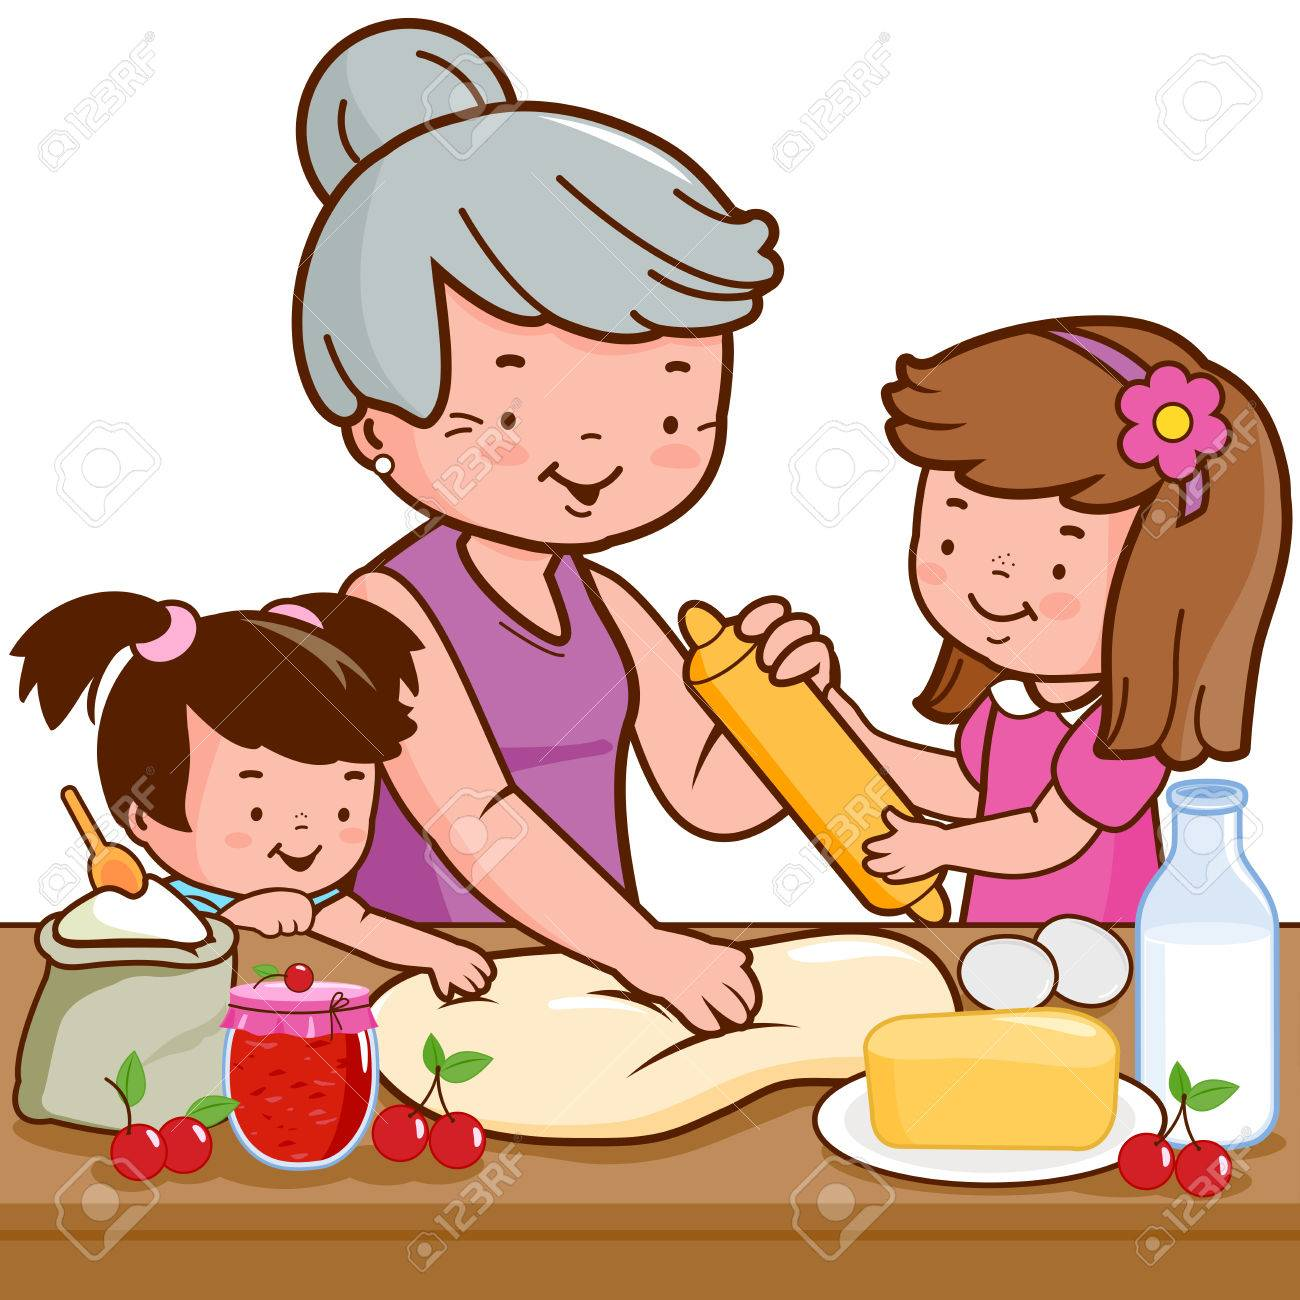 Grandmother and children cooking in the kitchen illustration. - 82182049